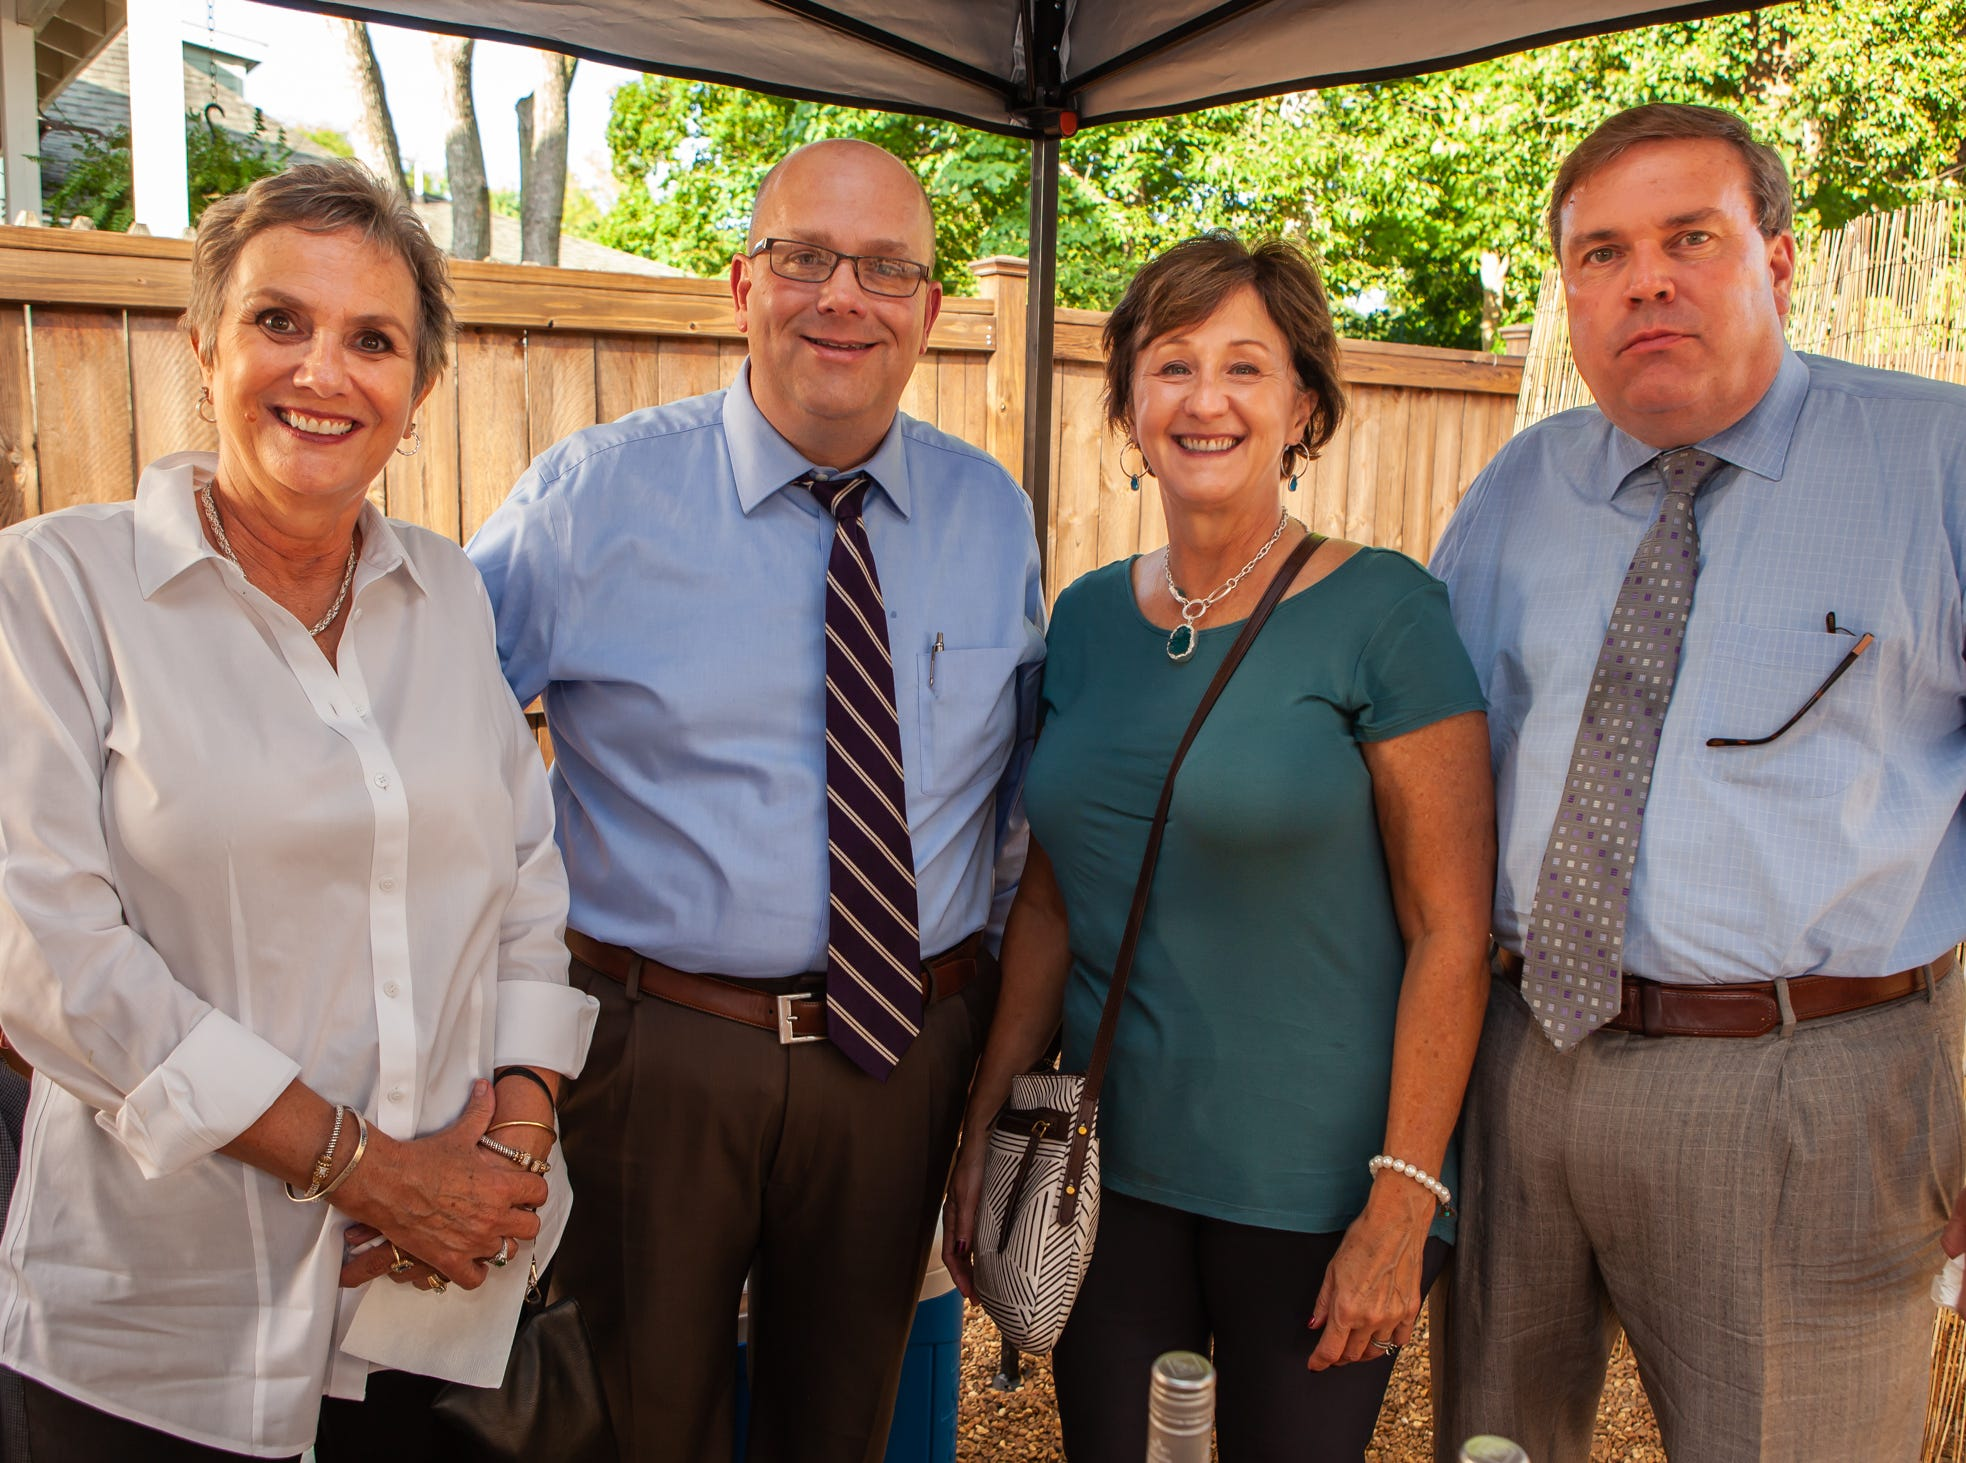 Melissa Warren, Sean Gilliland, Terri Donovan and Ken Halliburton at An Evening on Lytle, hosted by Main Street Murfreesboro/Rutherford County. The event was held at the home of Rick and Amy Cottle.